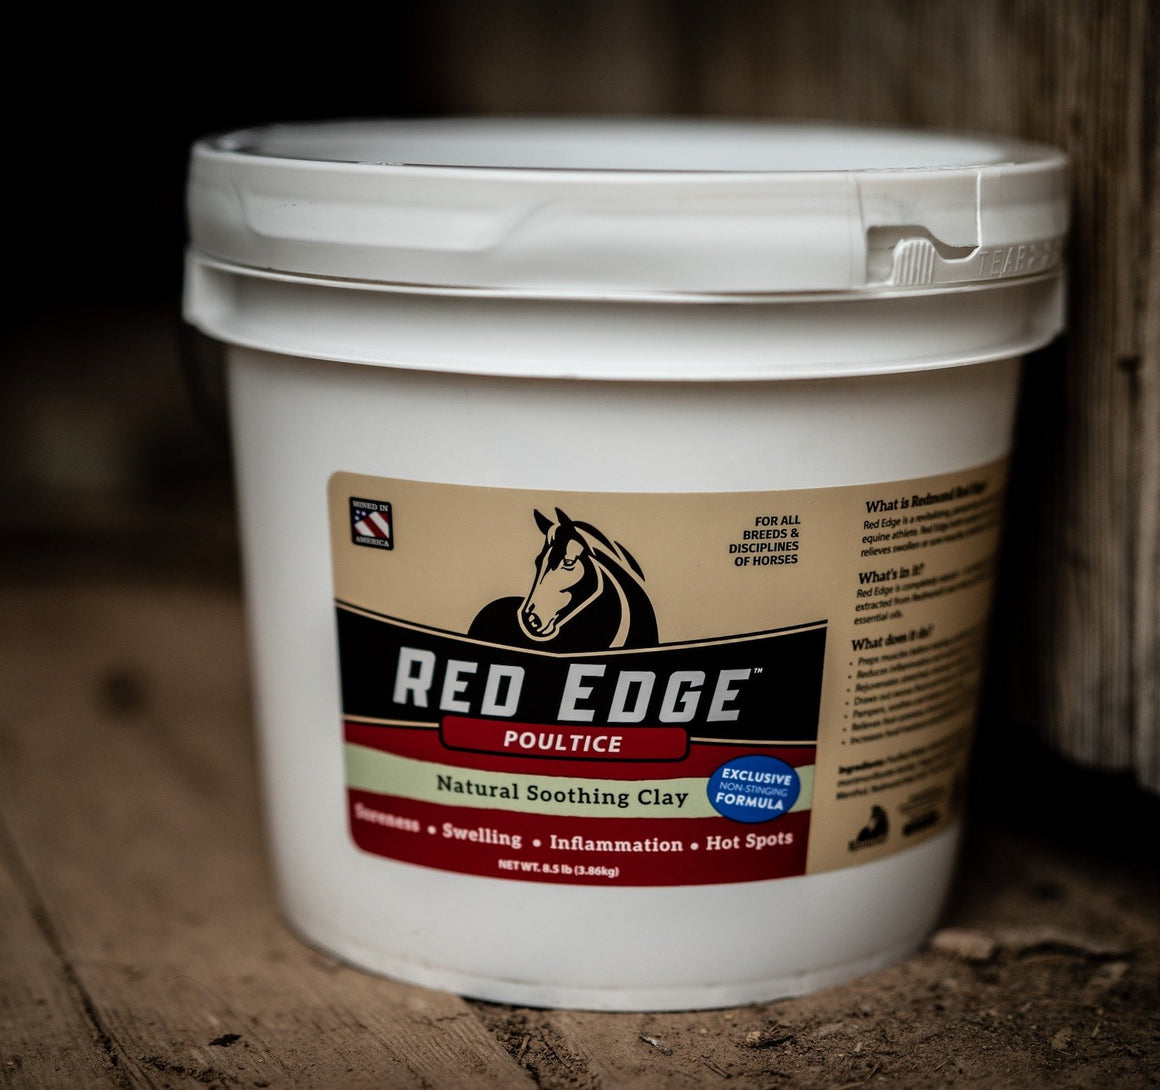 Redmond Red Edge Poultice